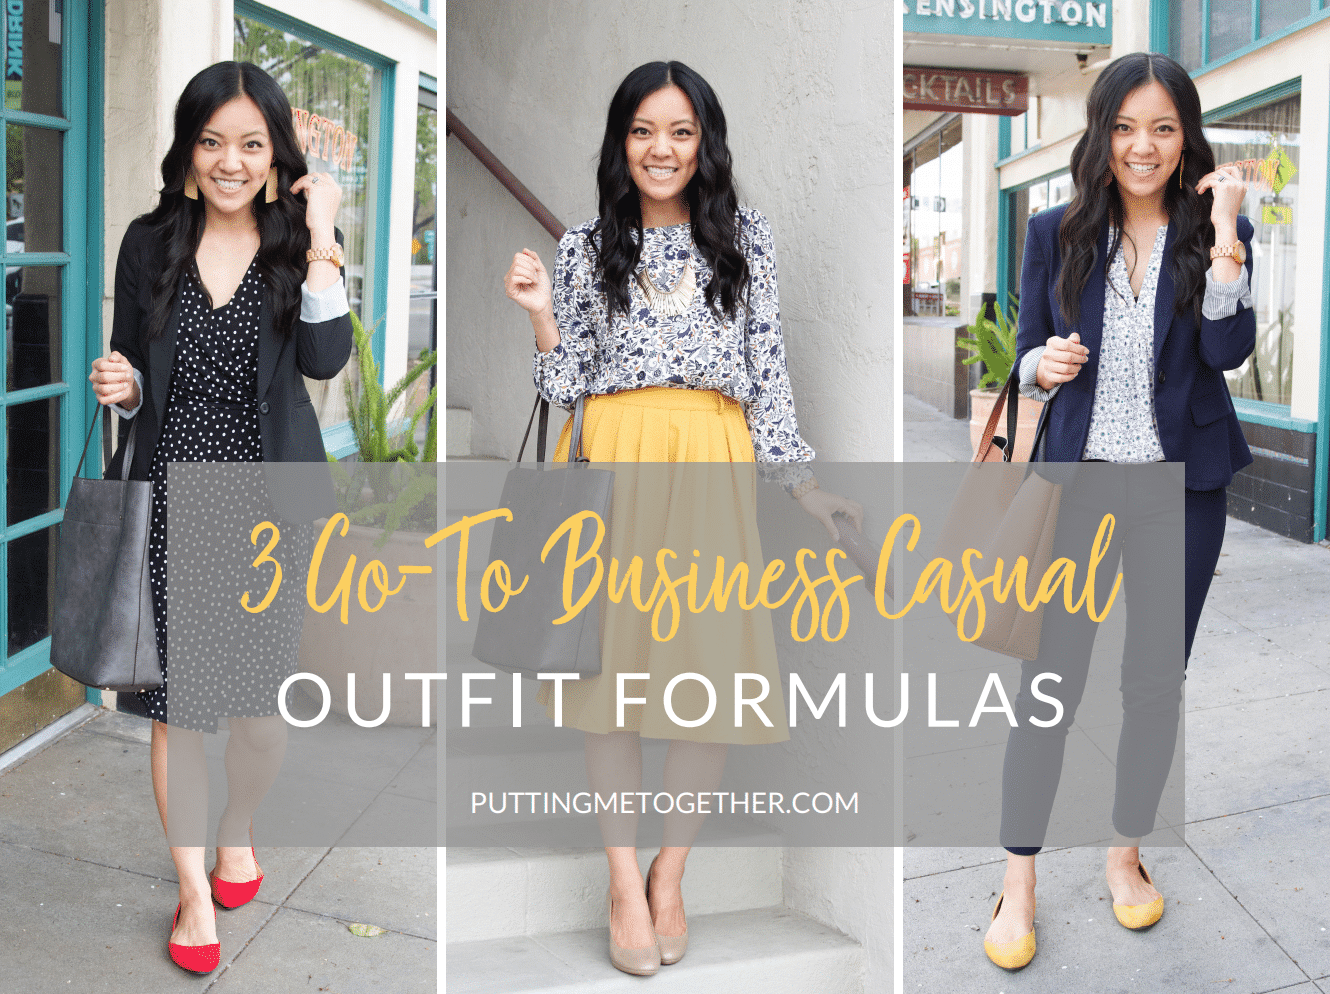 3c1e44141e0 Three Go-To Business Casual Outfit Formulas for Everyday Workwear